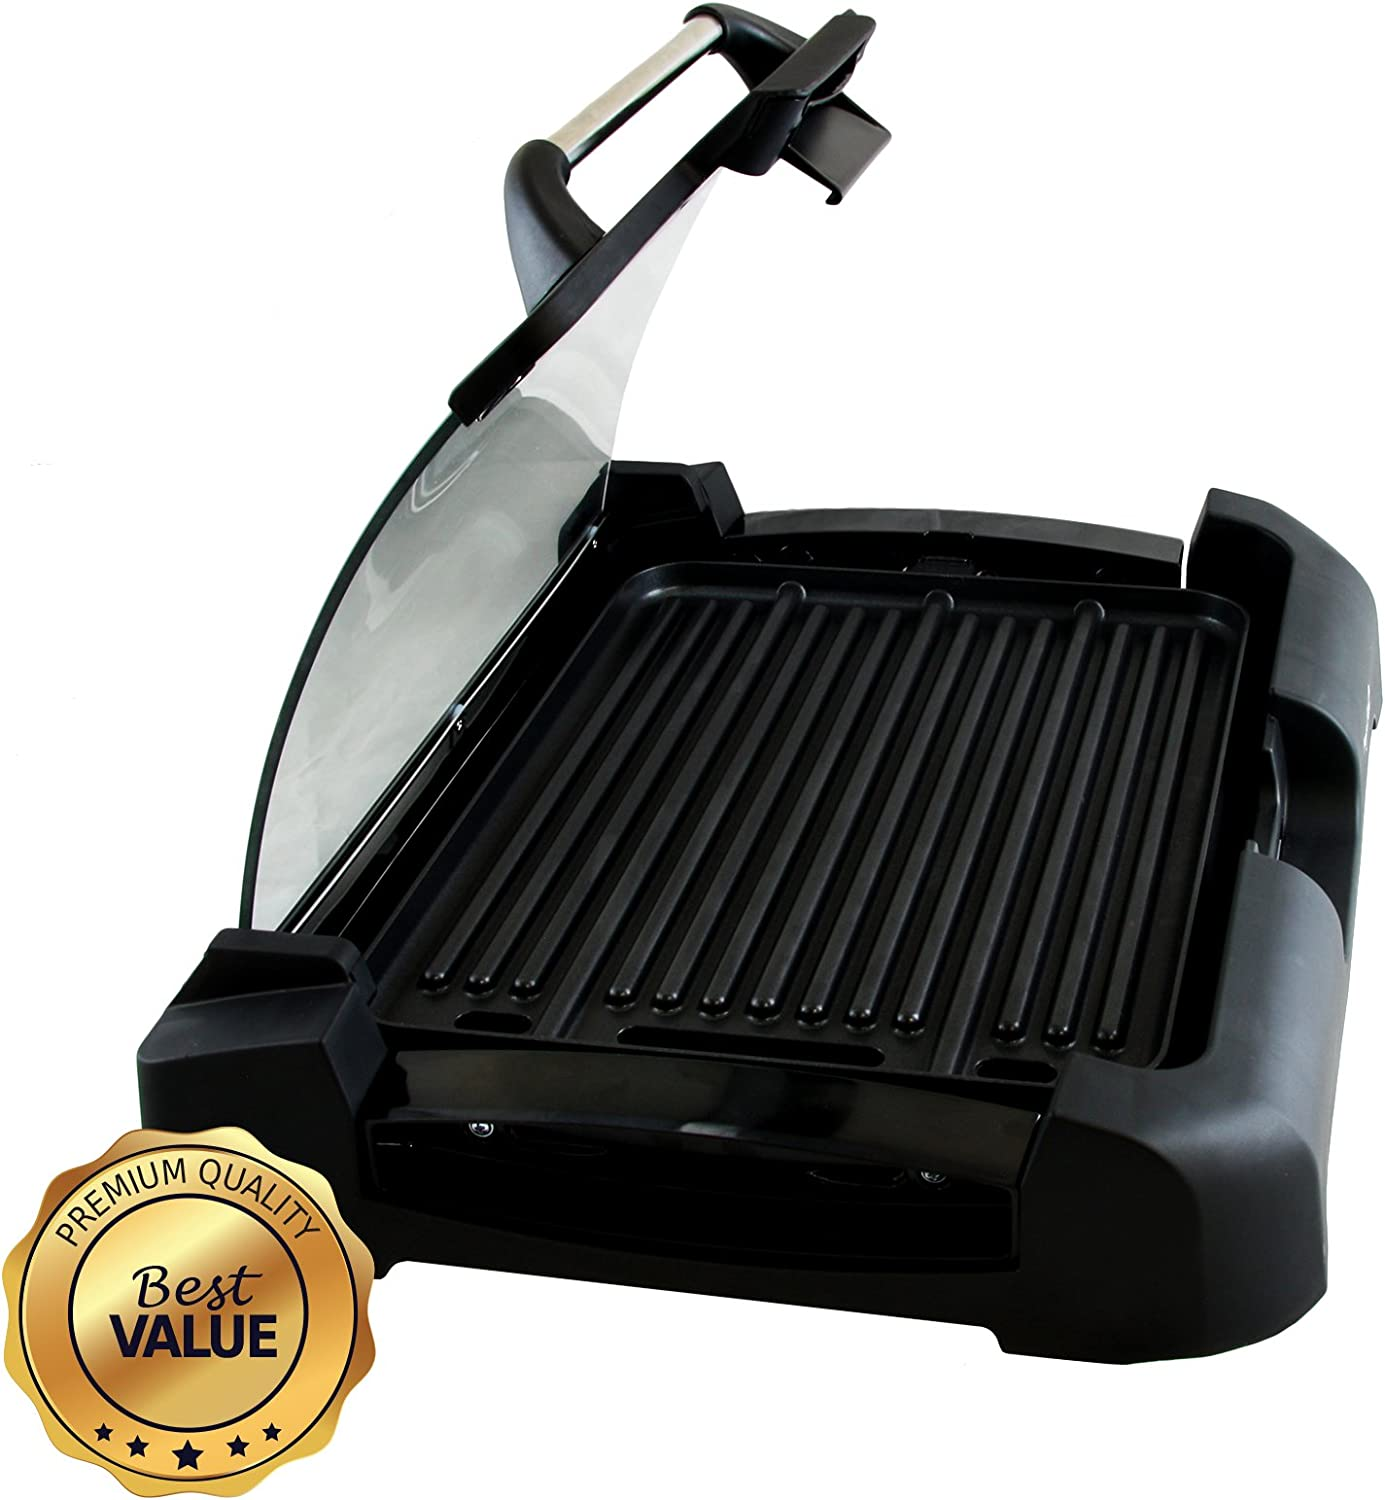 MegaChef Dual Surface Reversible Indoor Grill and Griddle with Removable Glass Lid